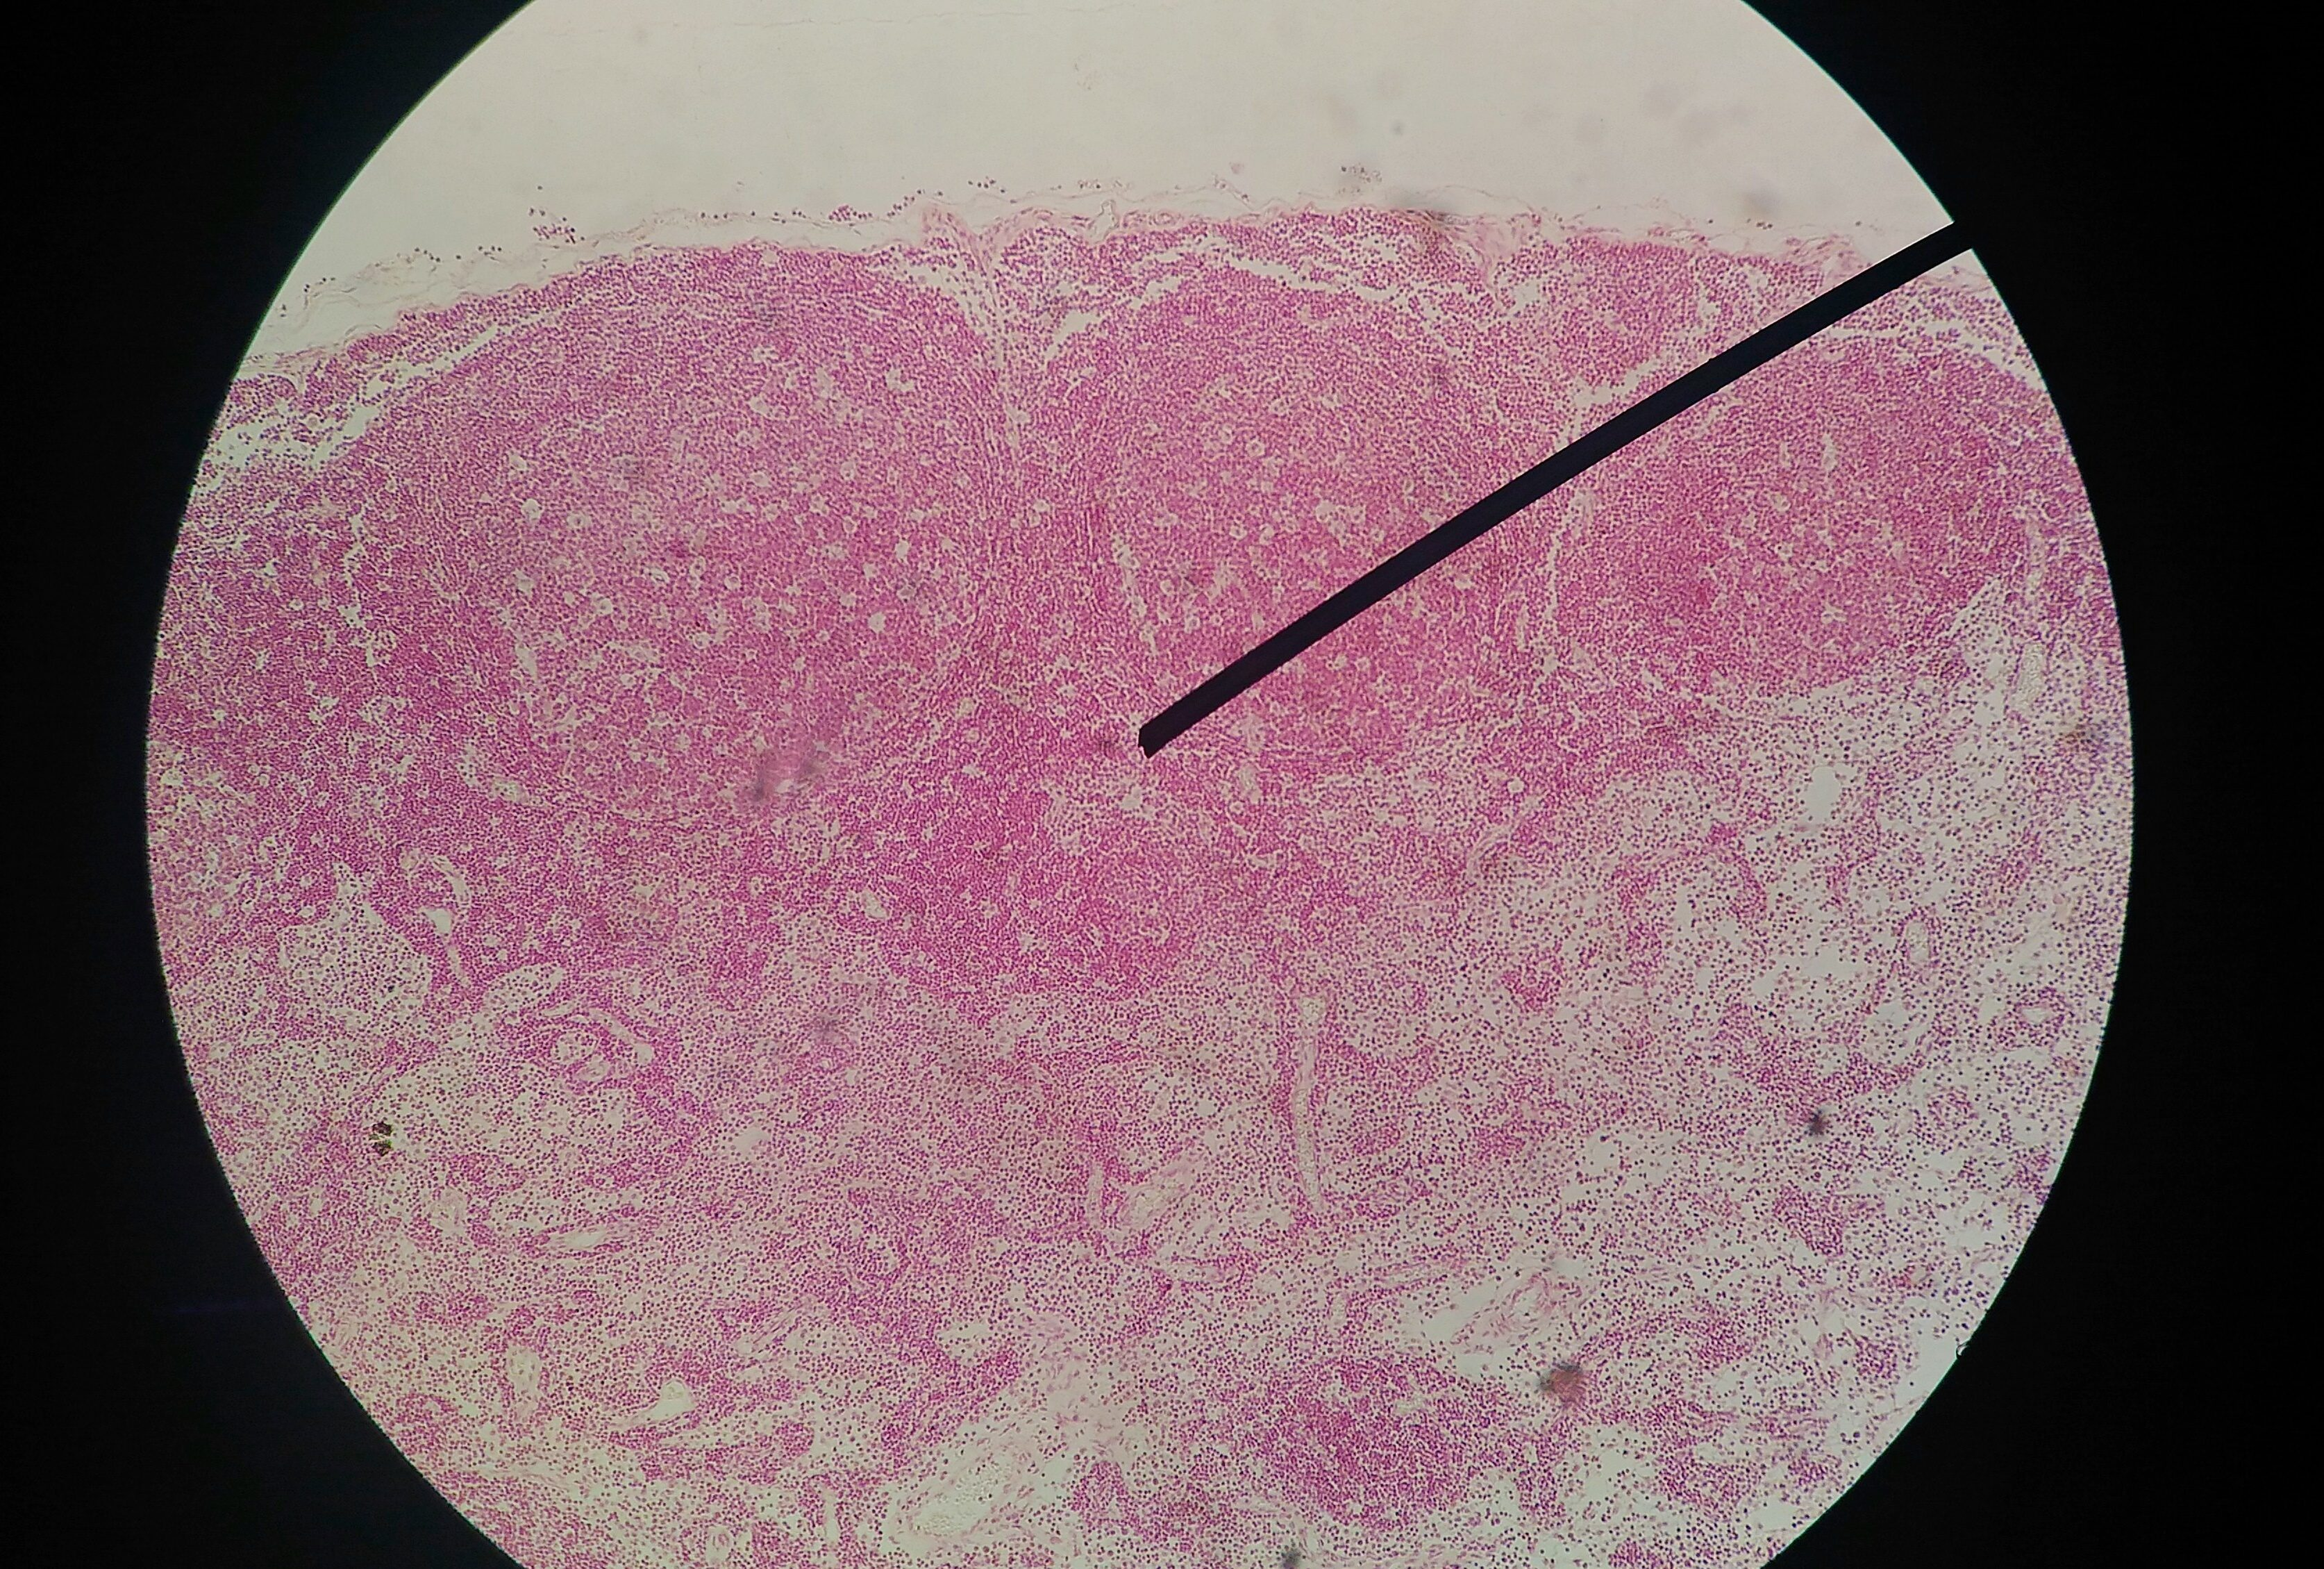 papilloma virus si vede con pap test